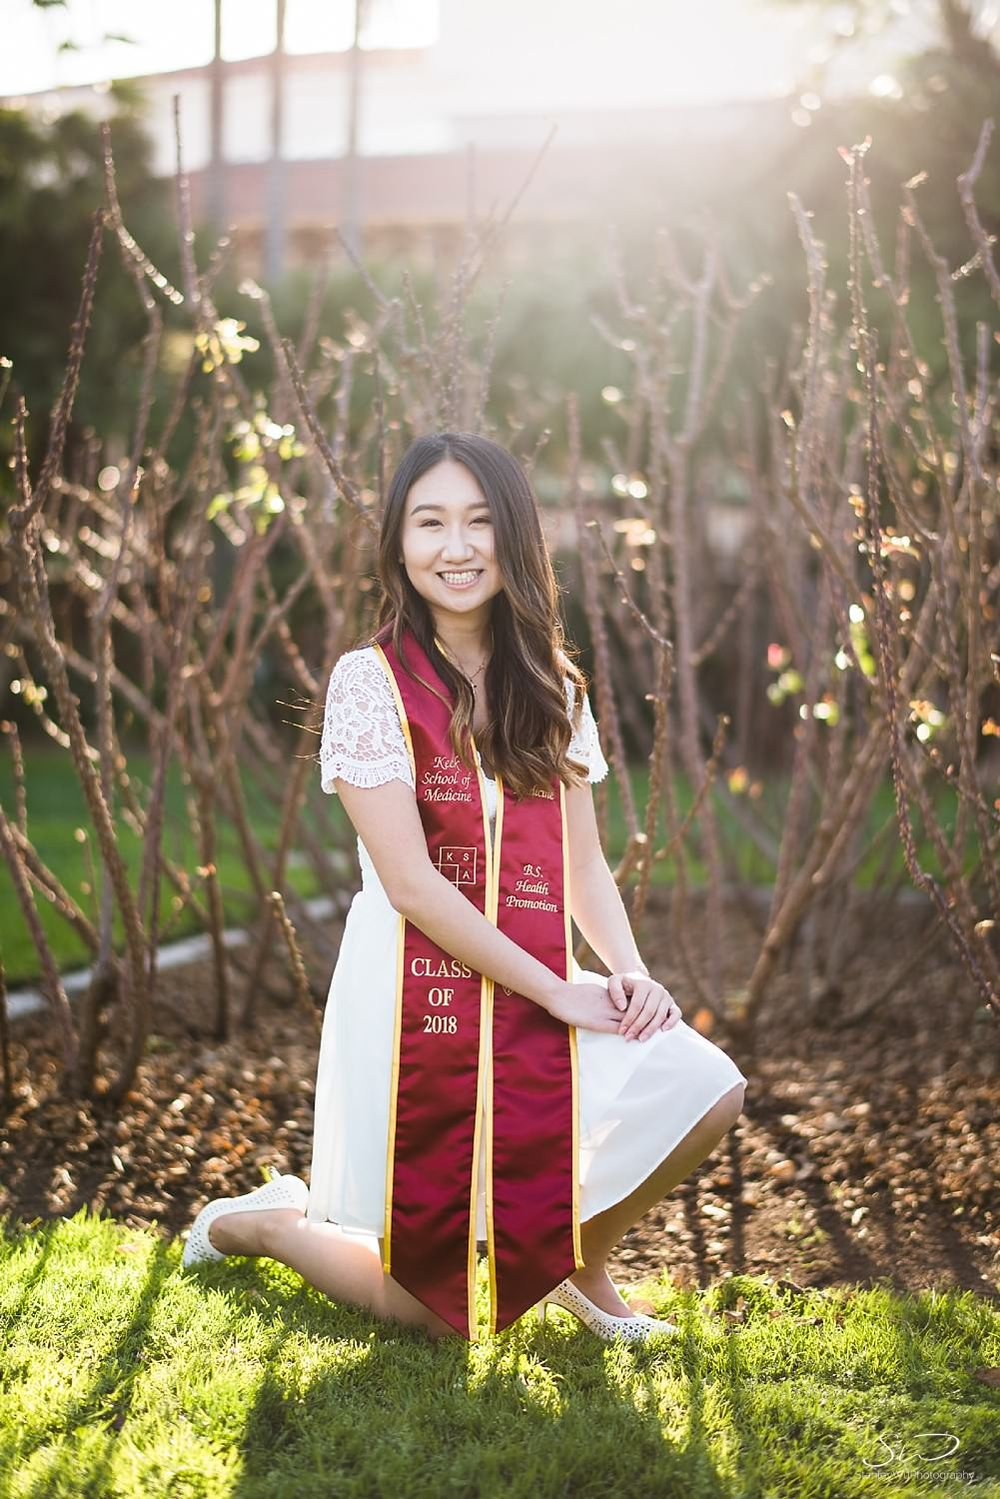 Senior wearing sash and white dress at Rose Garden at USC | Los Angeles Orange County Senior Portrait & Wedding Photographer